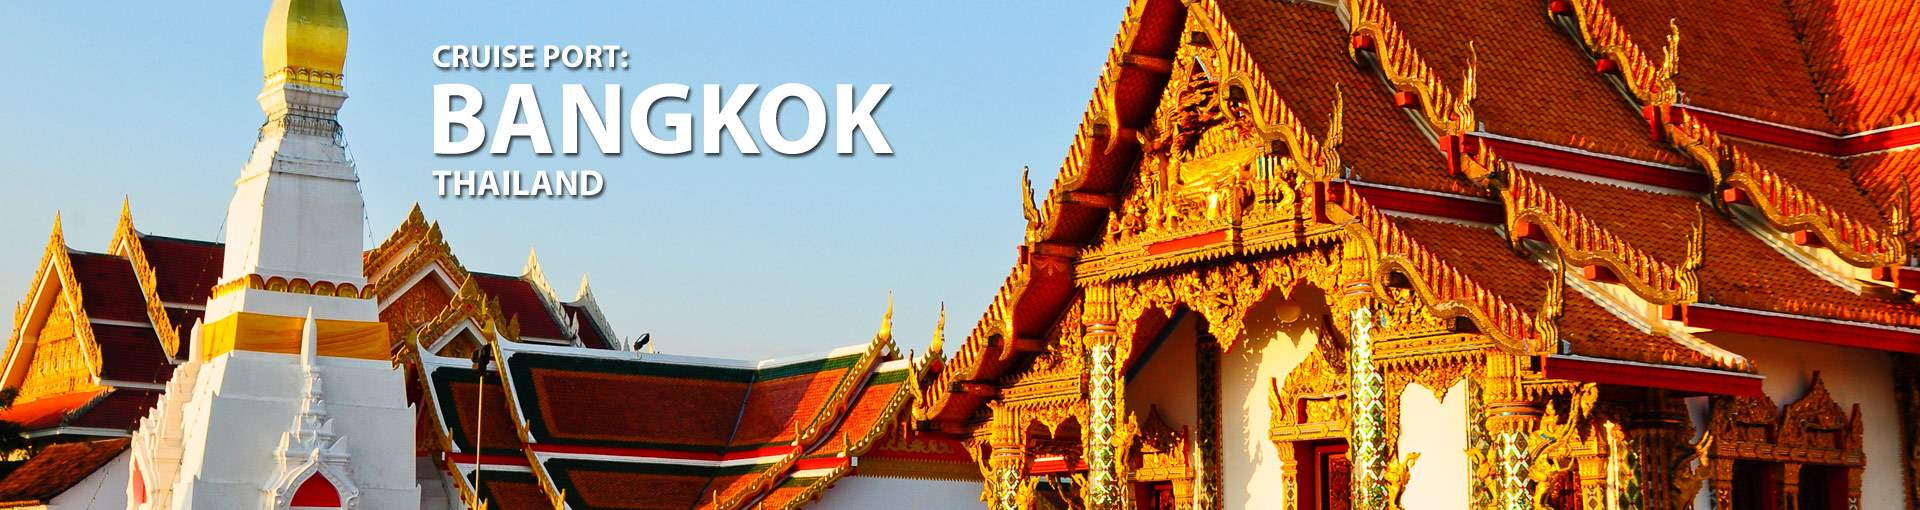 Cruises from Bangkok, Thailand